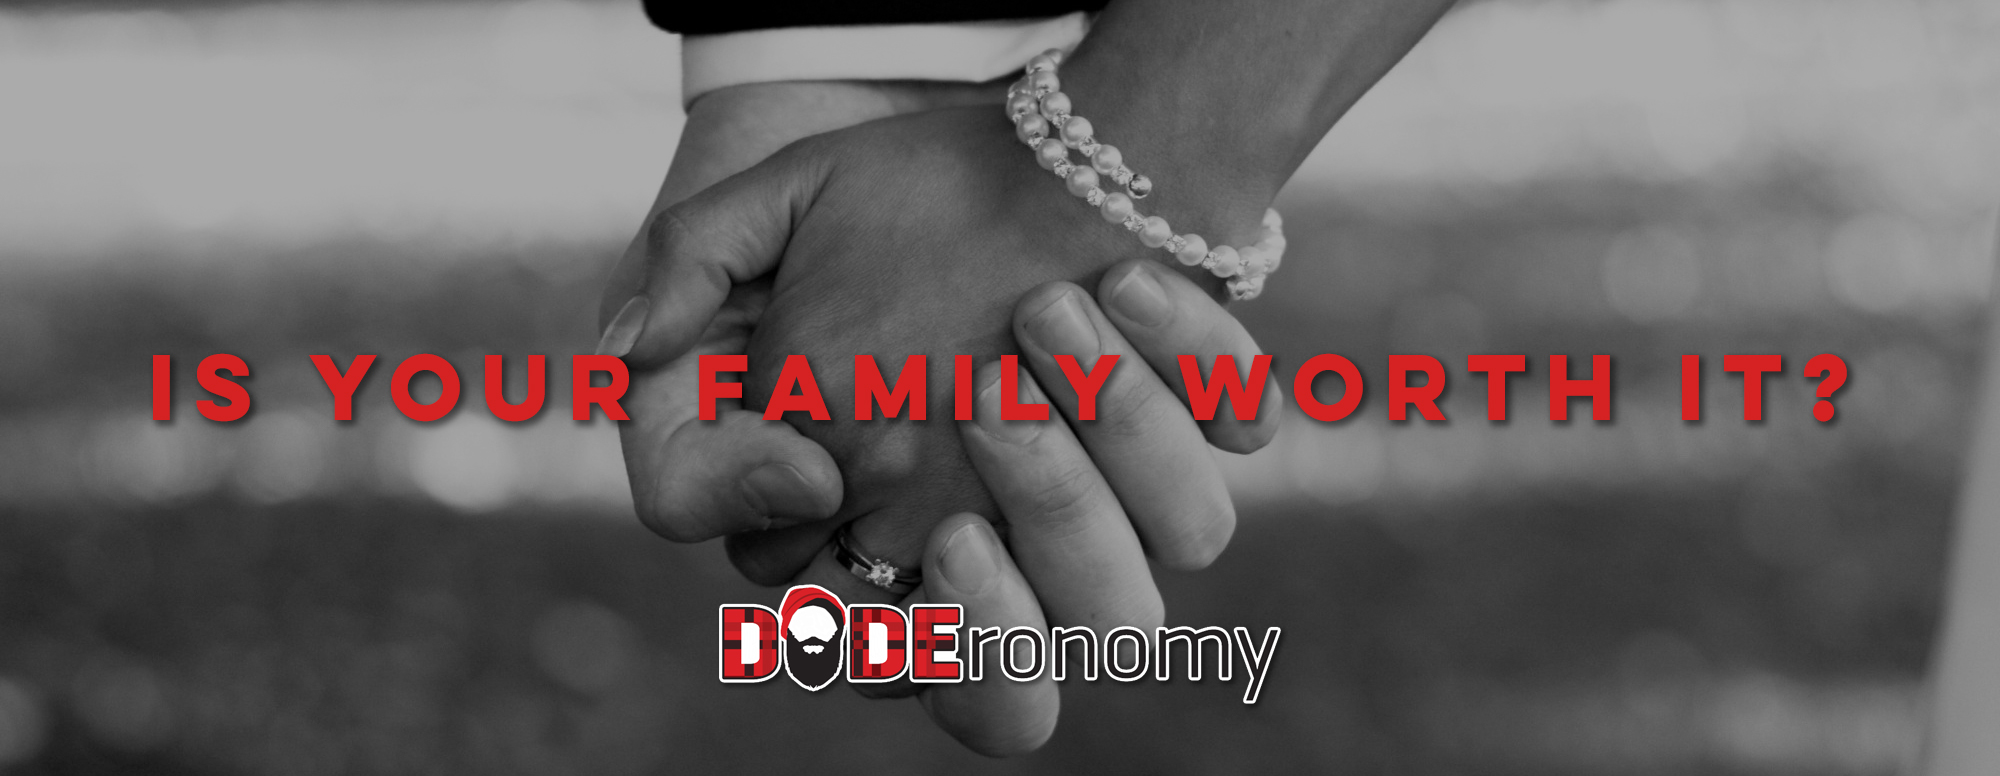 family-worth-it